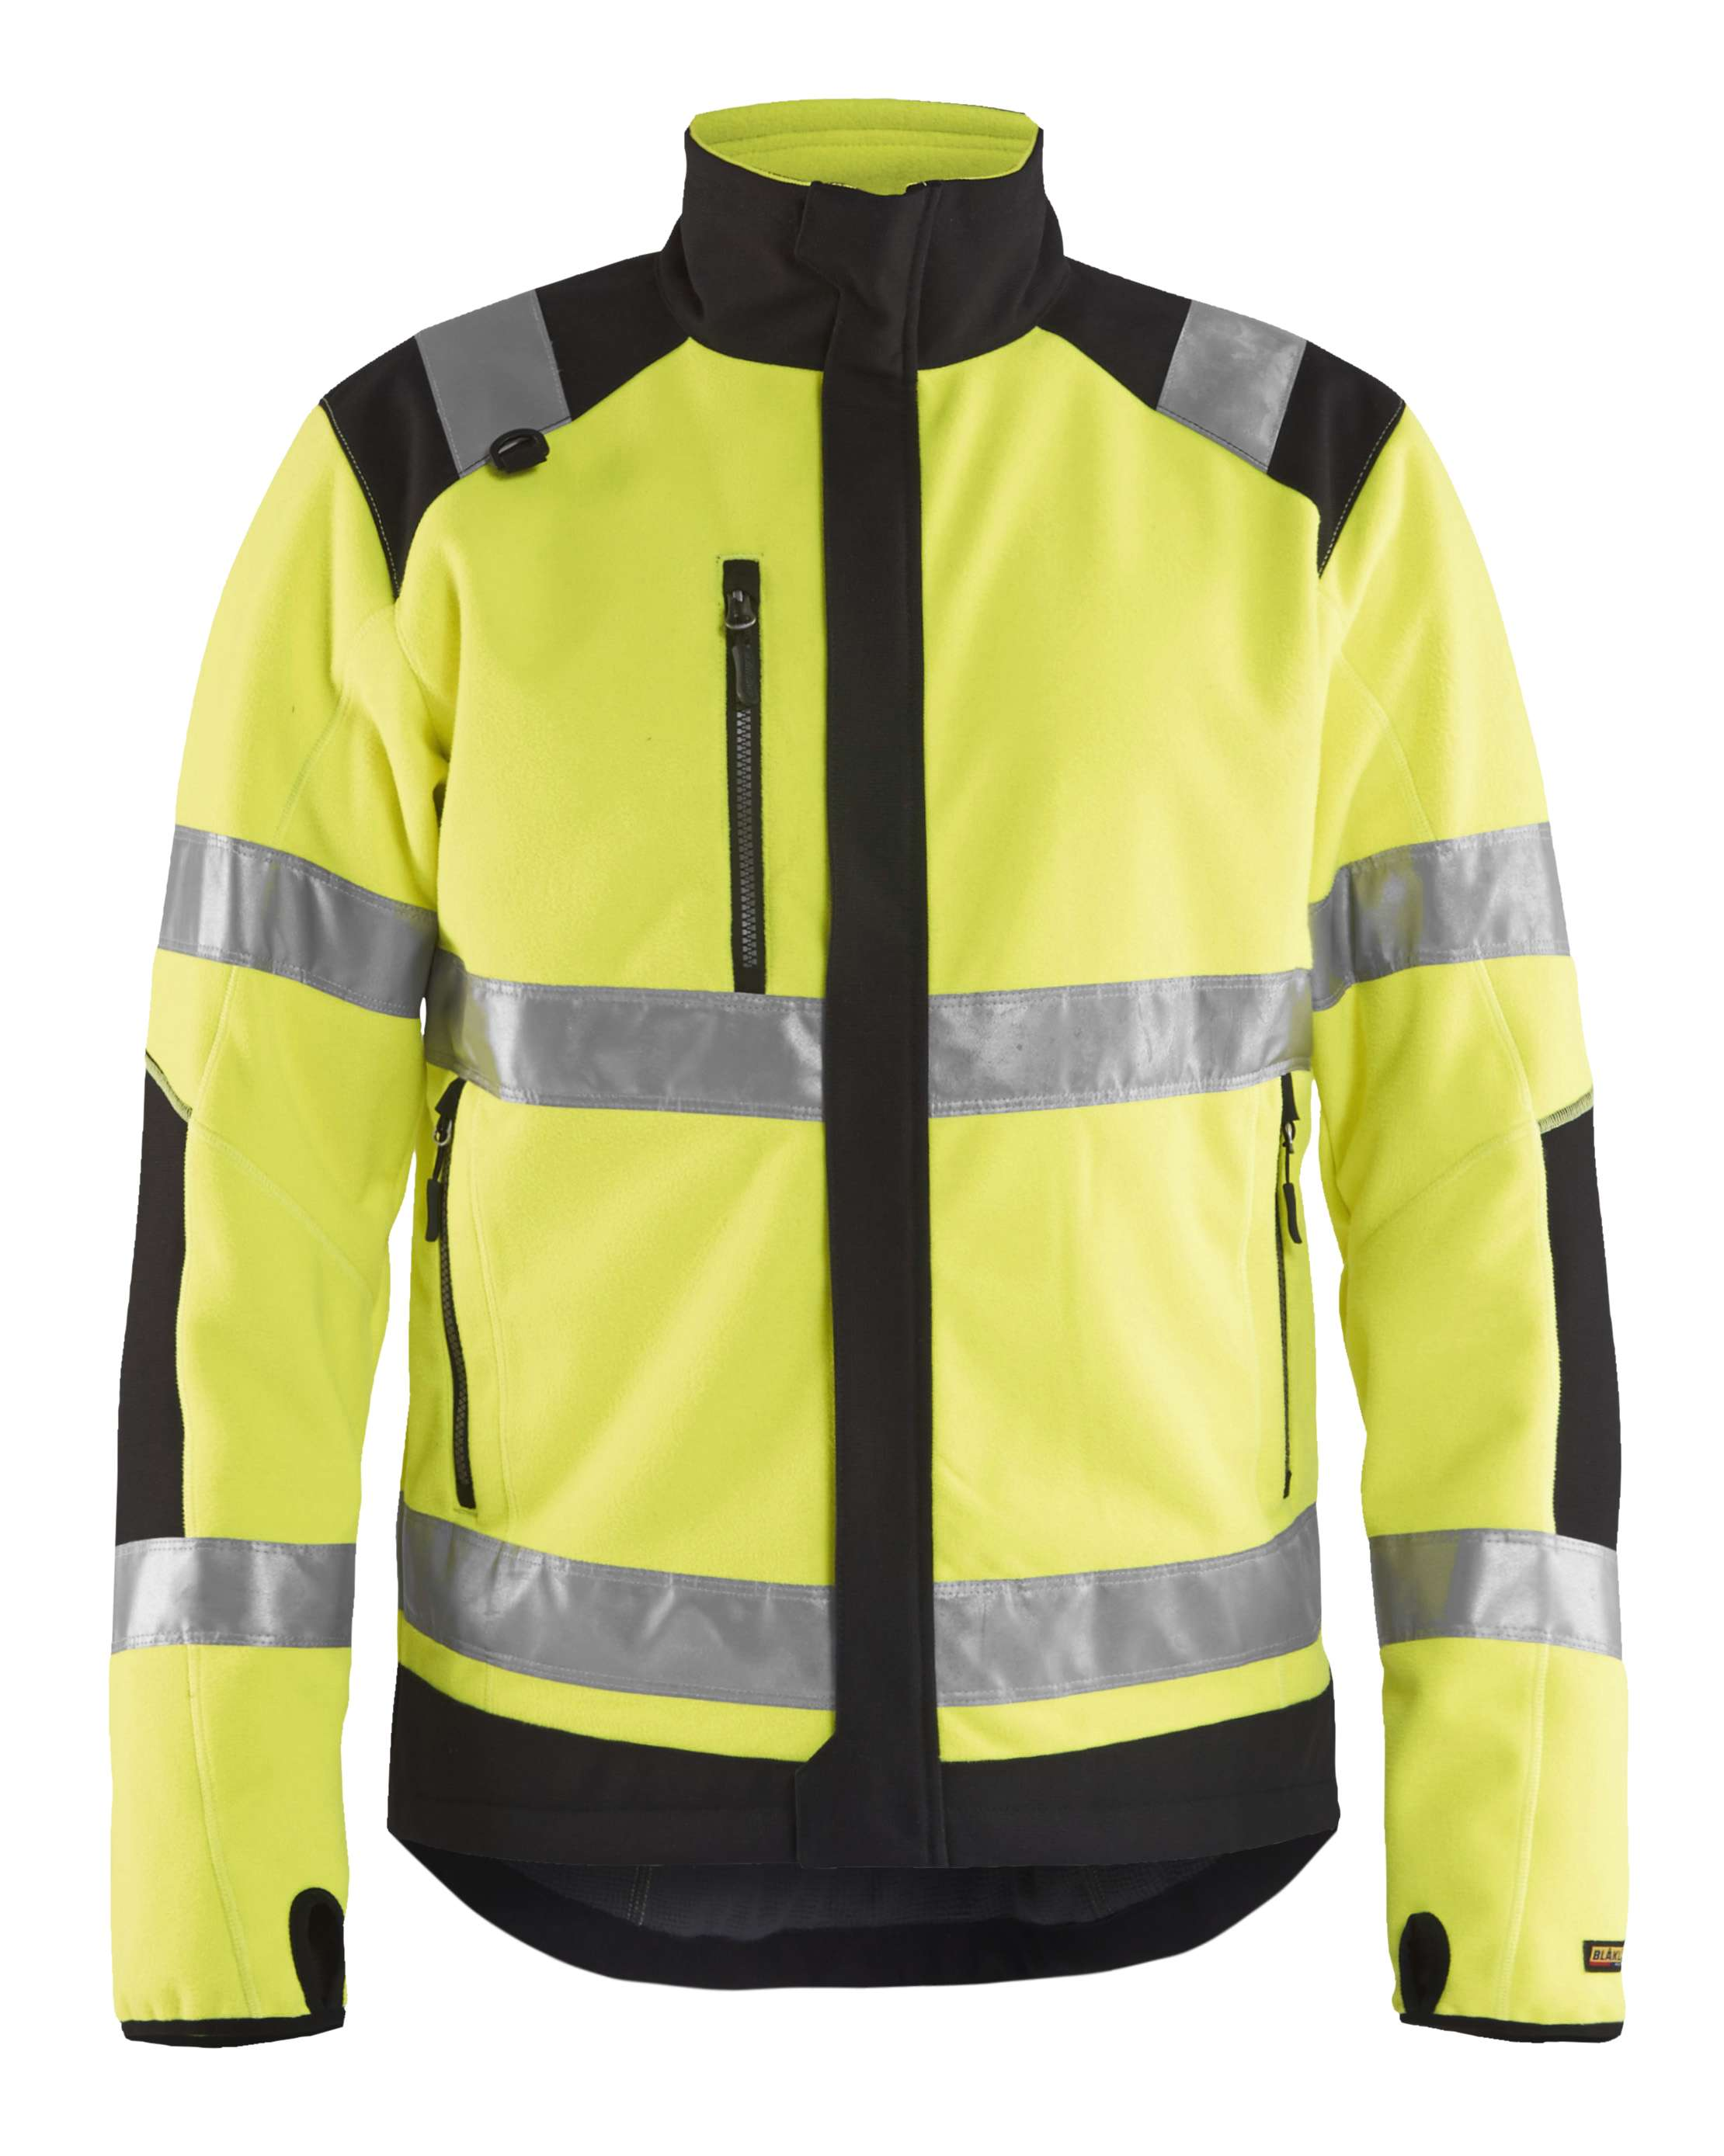 Blaklader Fleece jassen 48882524 High Vis geel-zwart(3399)